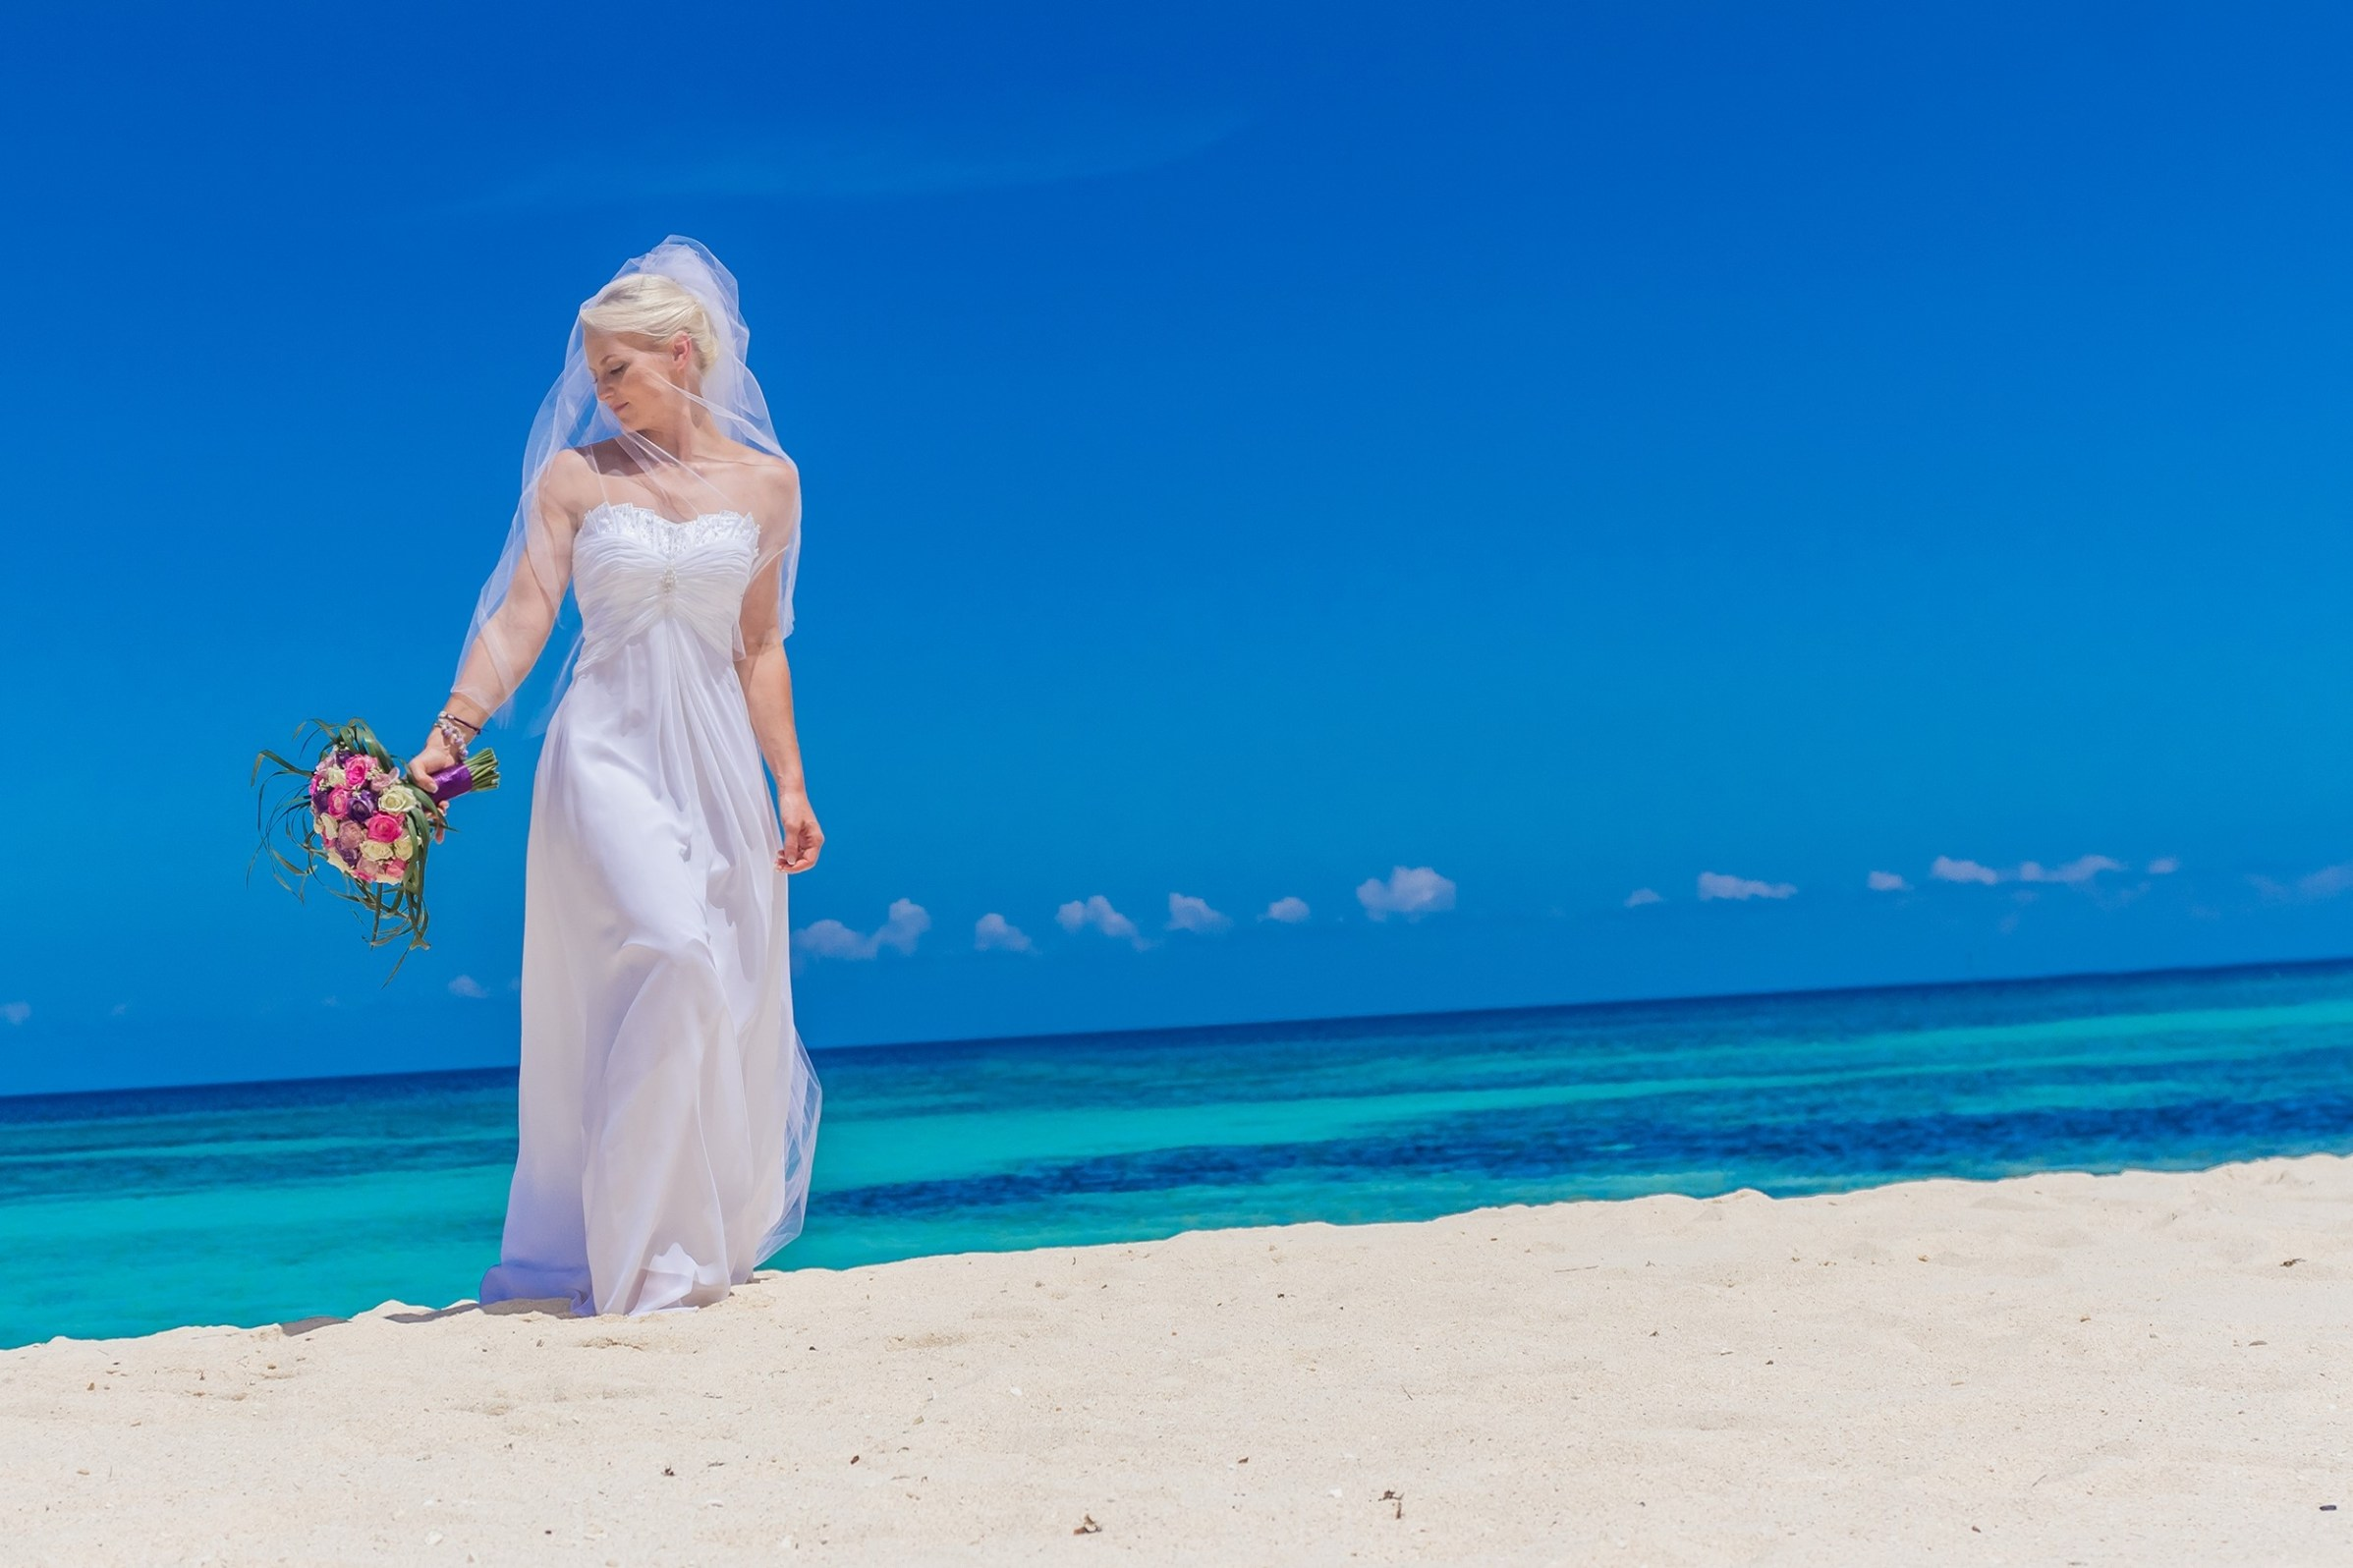 PART 2 WEDDING BEACH COUPLES PORTRAITS COLOUR AND BLACK AND WHITE 003807 (Custom)